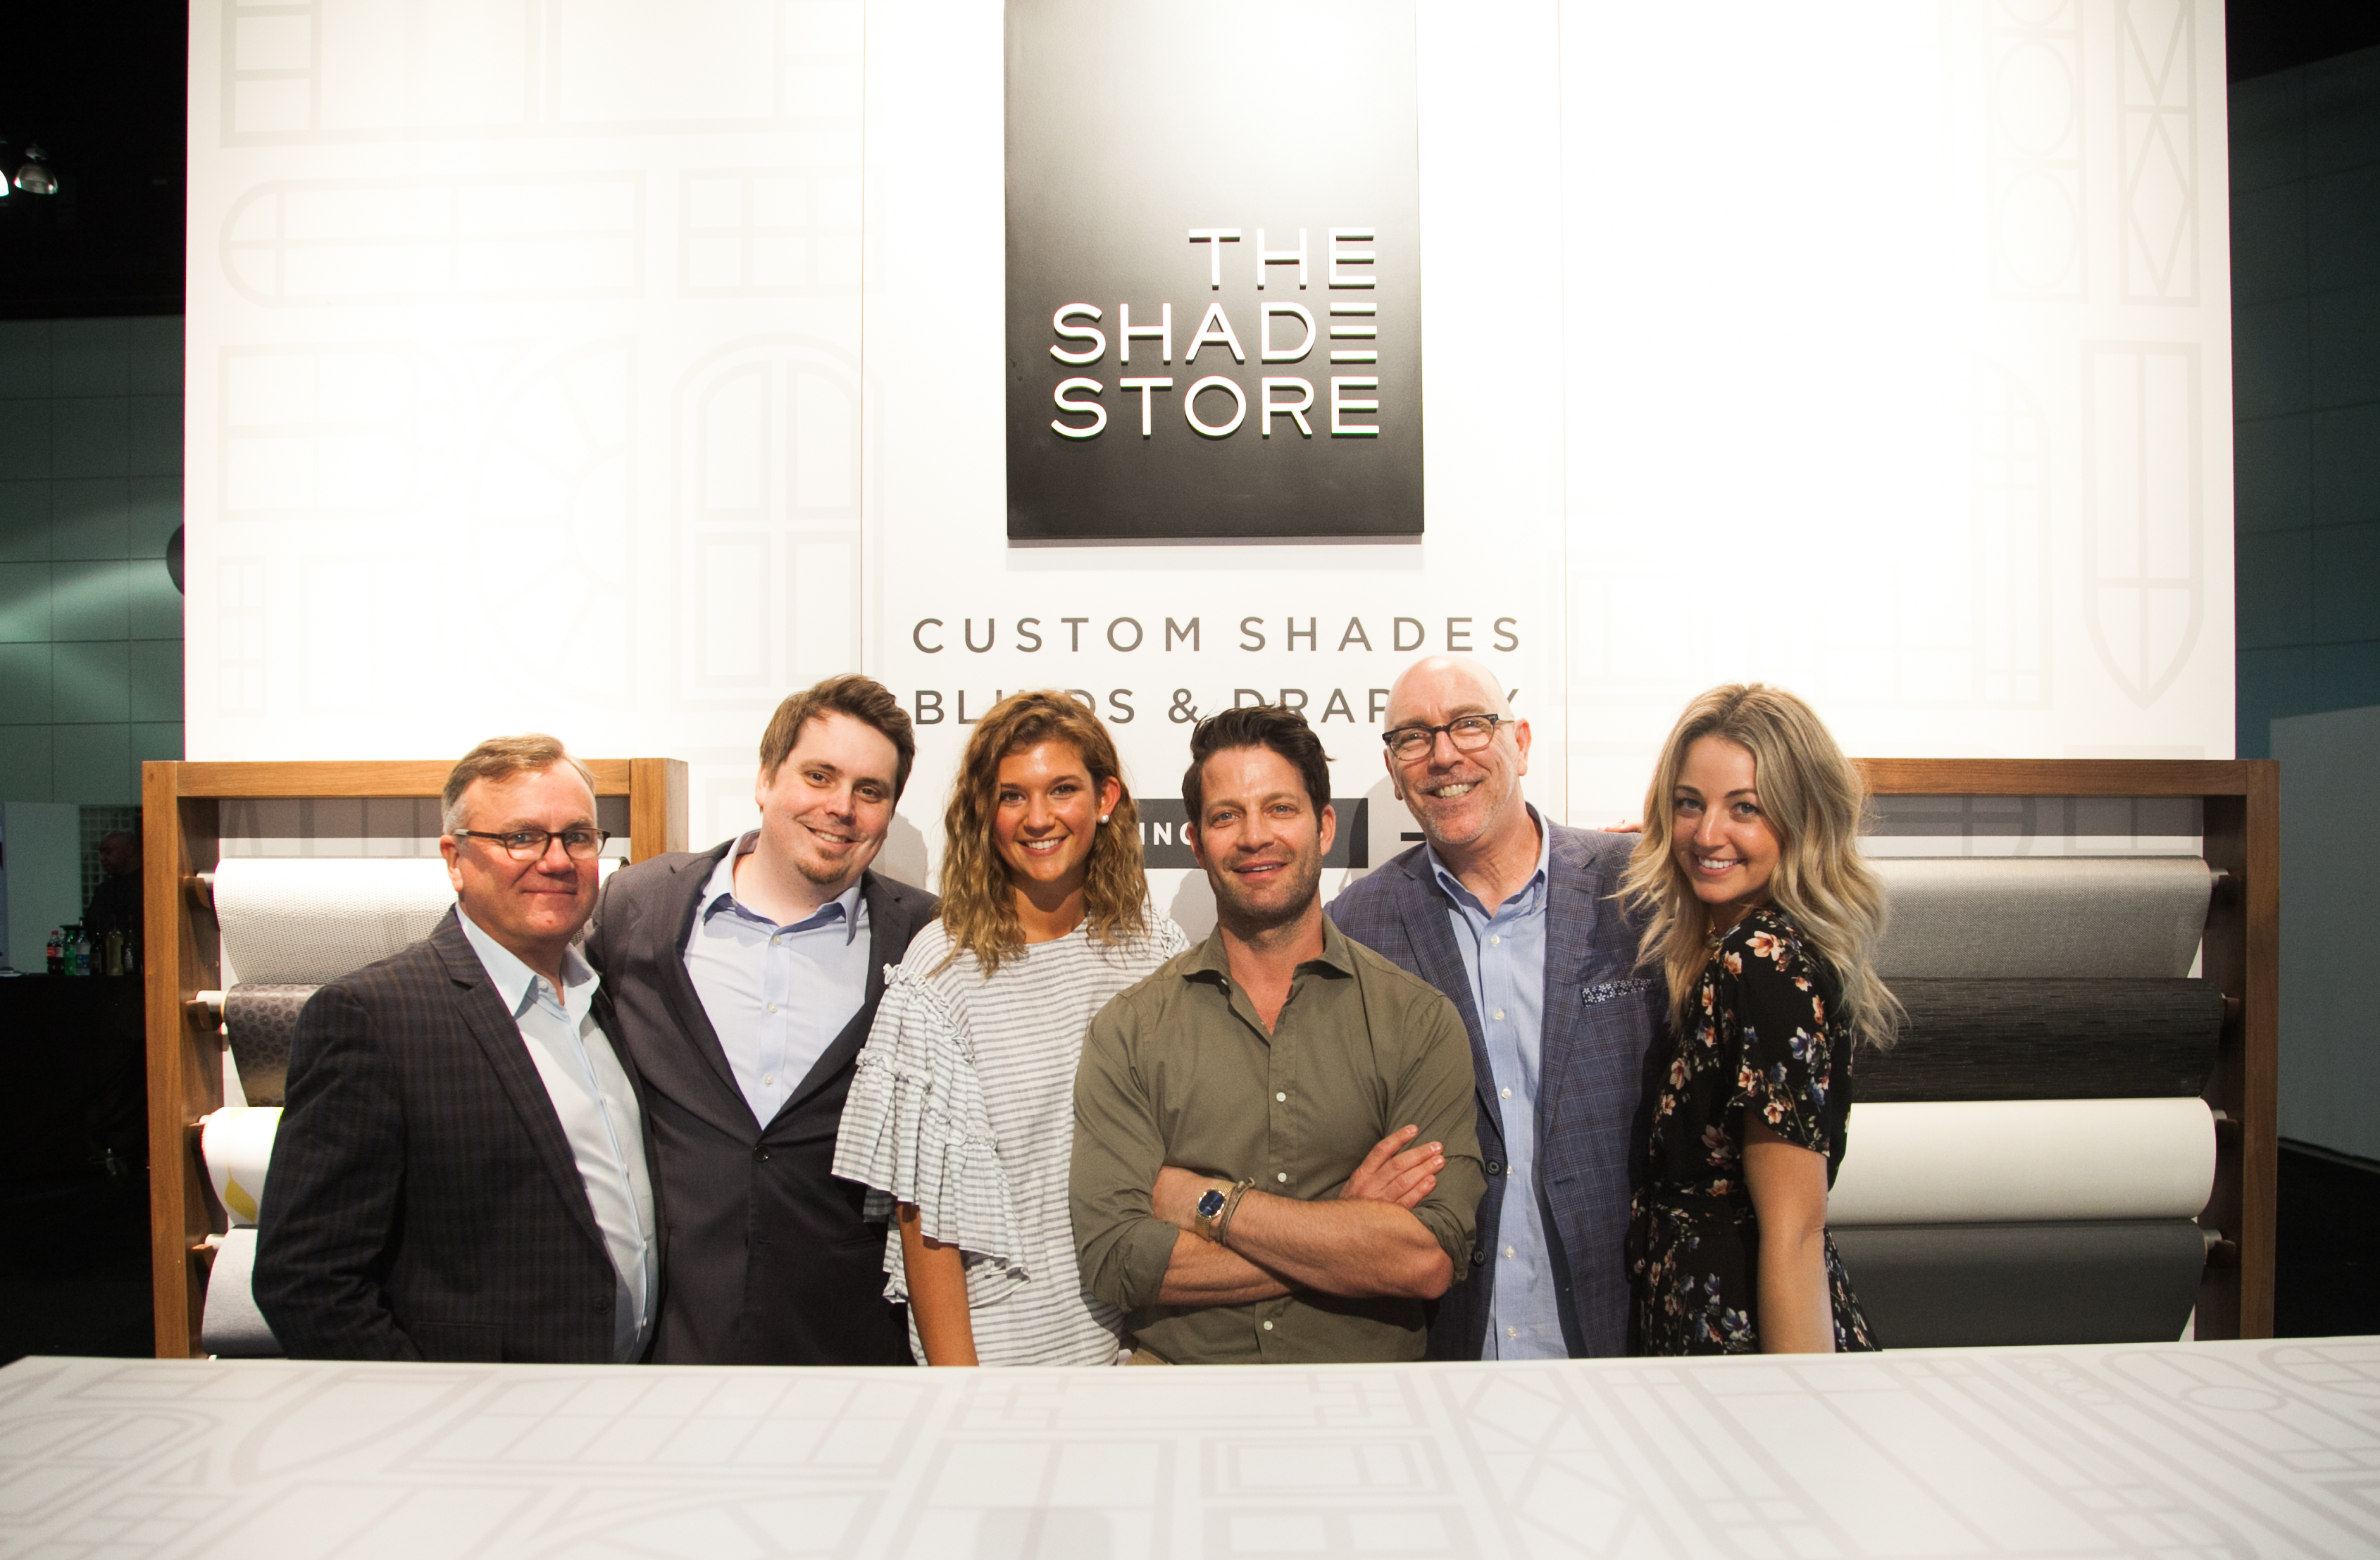 The Shade Store team: Michael Crotty, Adam Skalman, Lauren Murphy, Nate Berkus, Kenneth Smith and Whitney Marcus